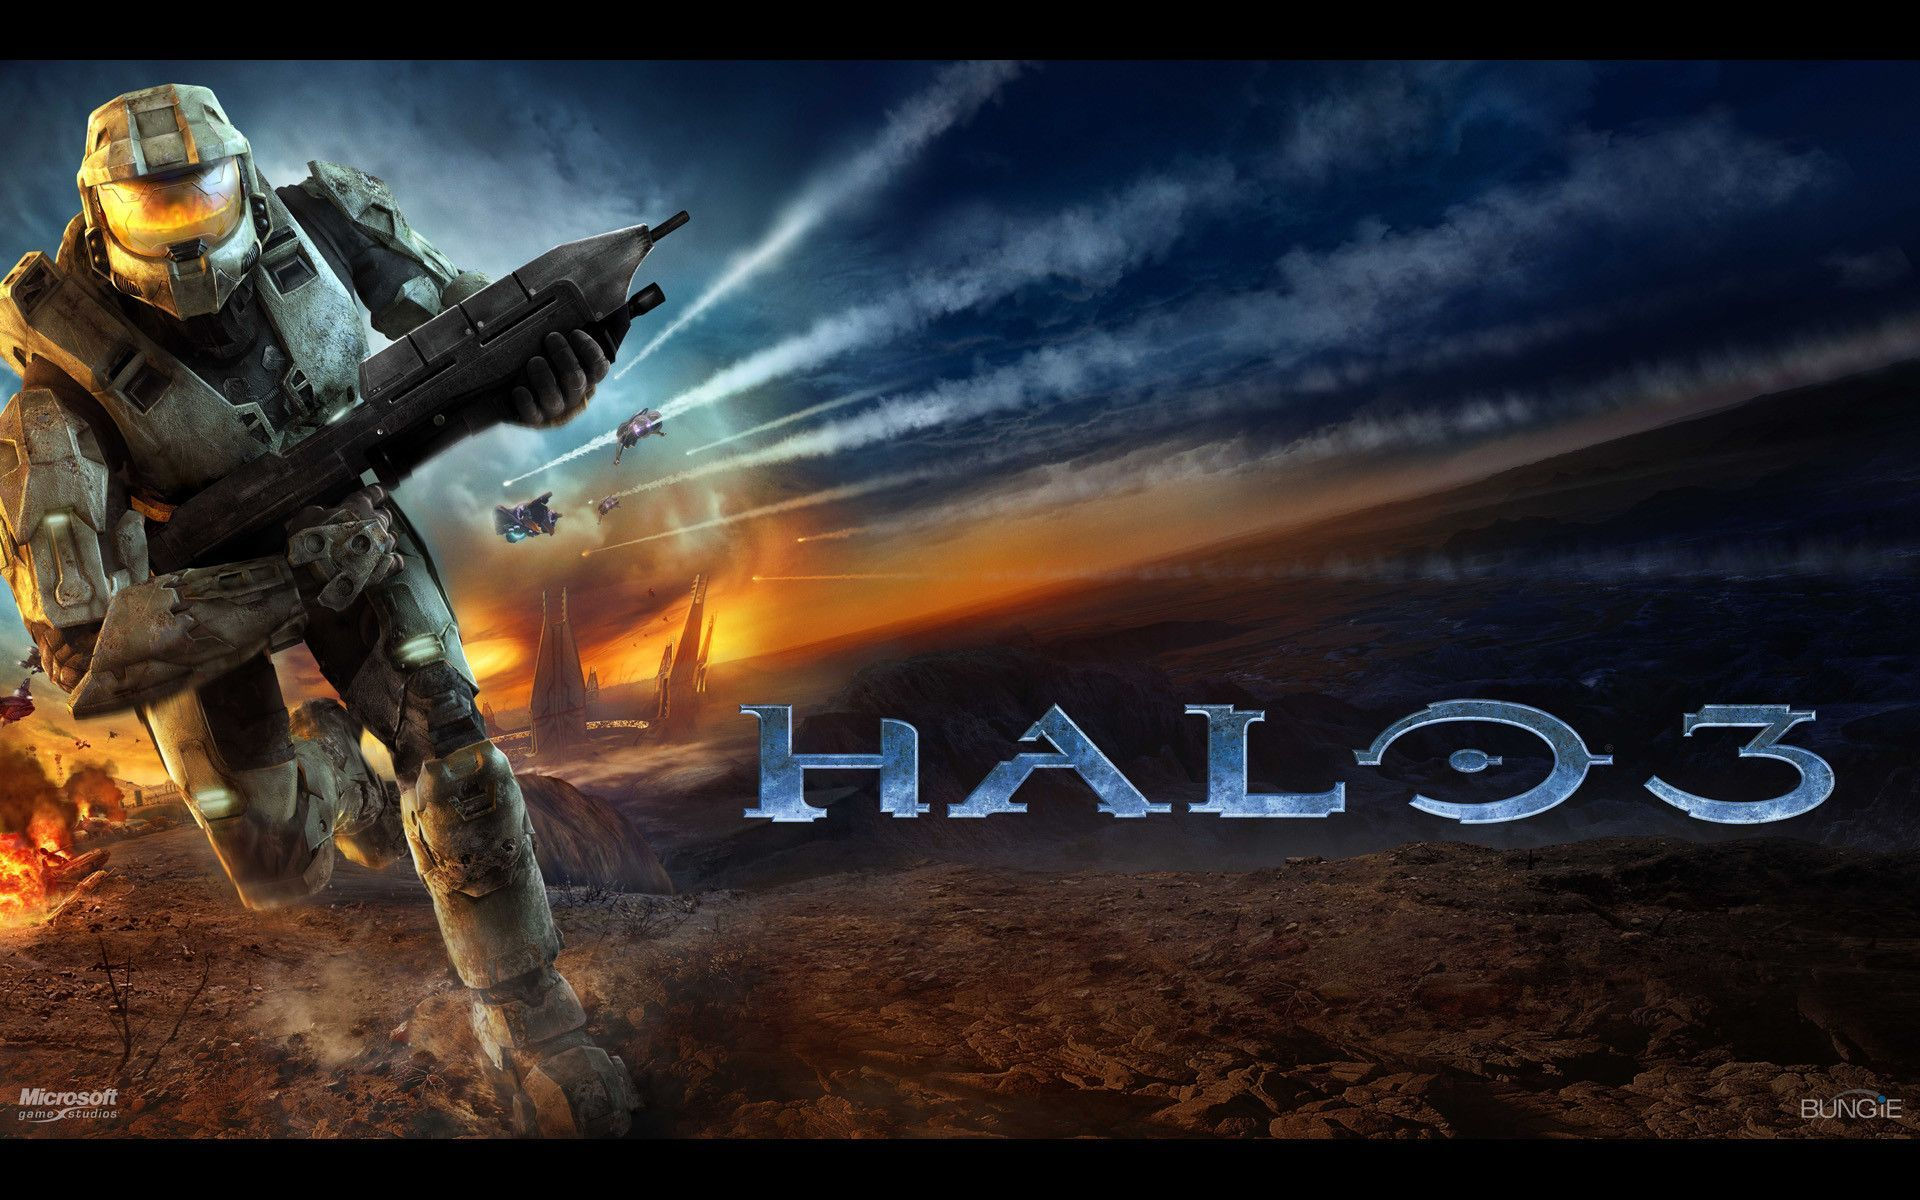 Game halo wallpaper hd hd wallpapers pinterest master chief game halo wallpaper hd voltagebd Choice Image